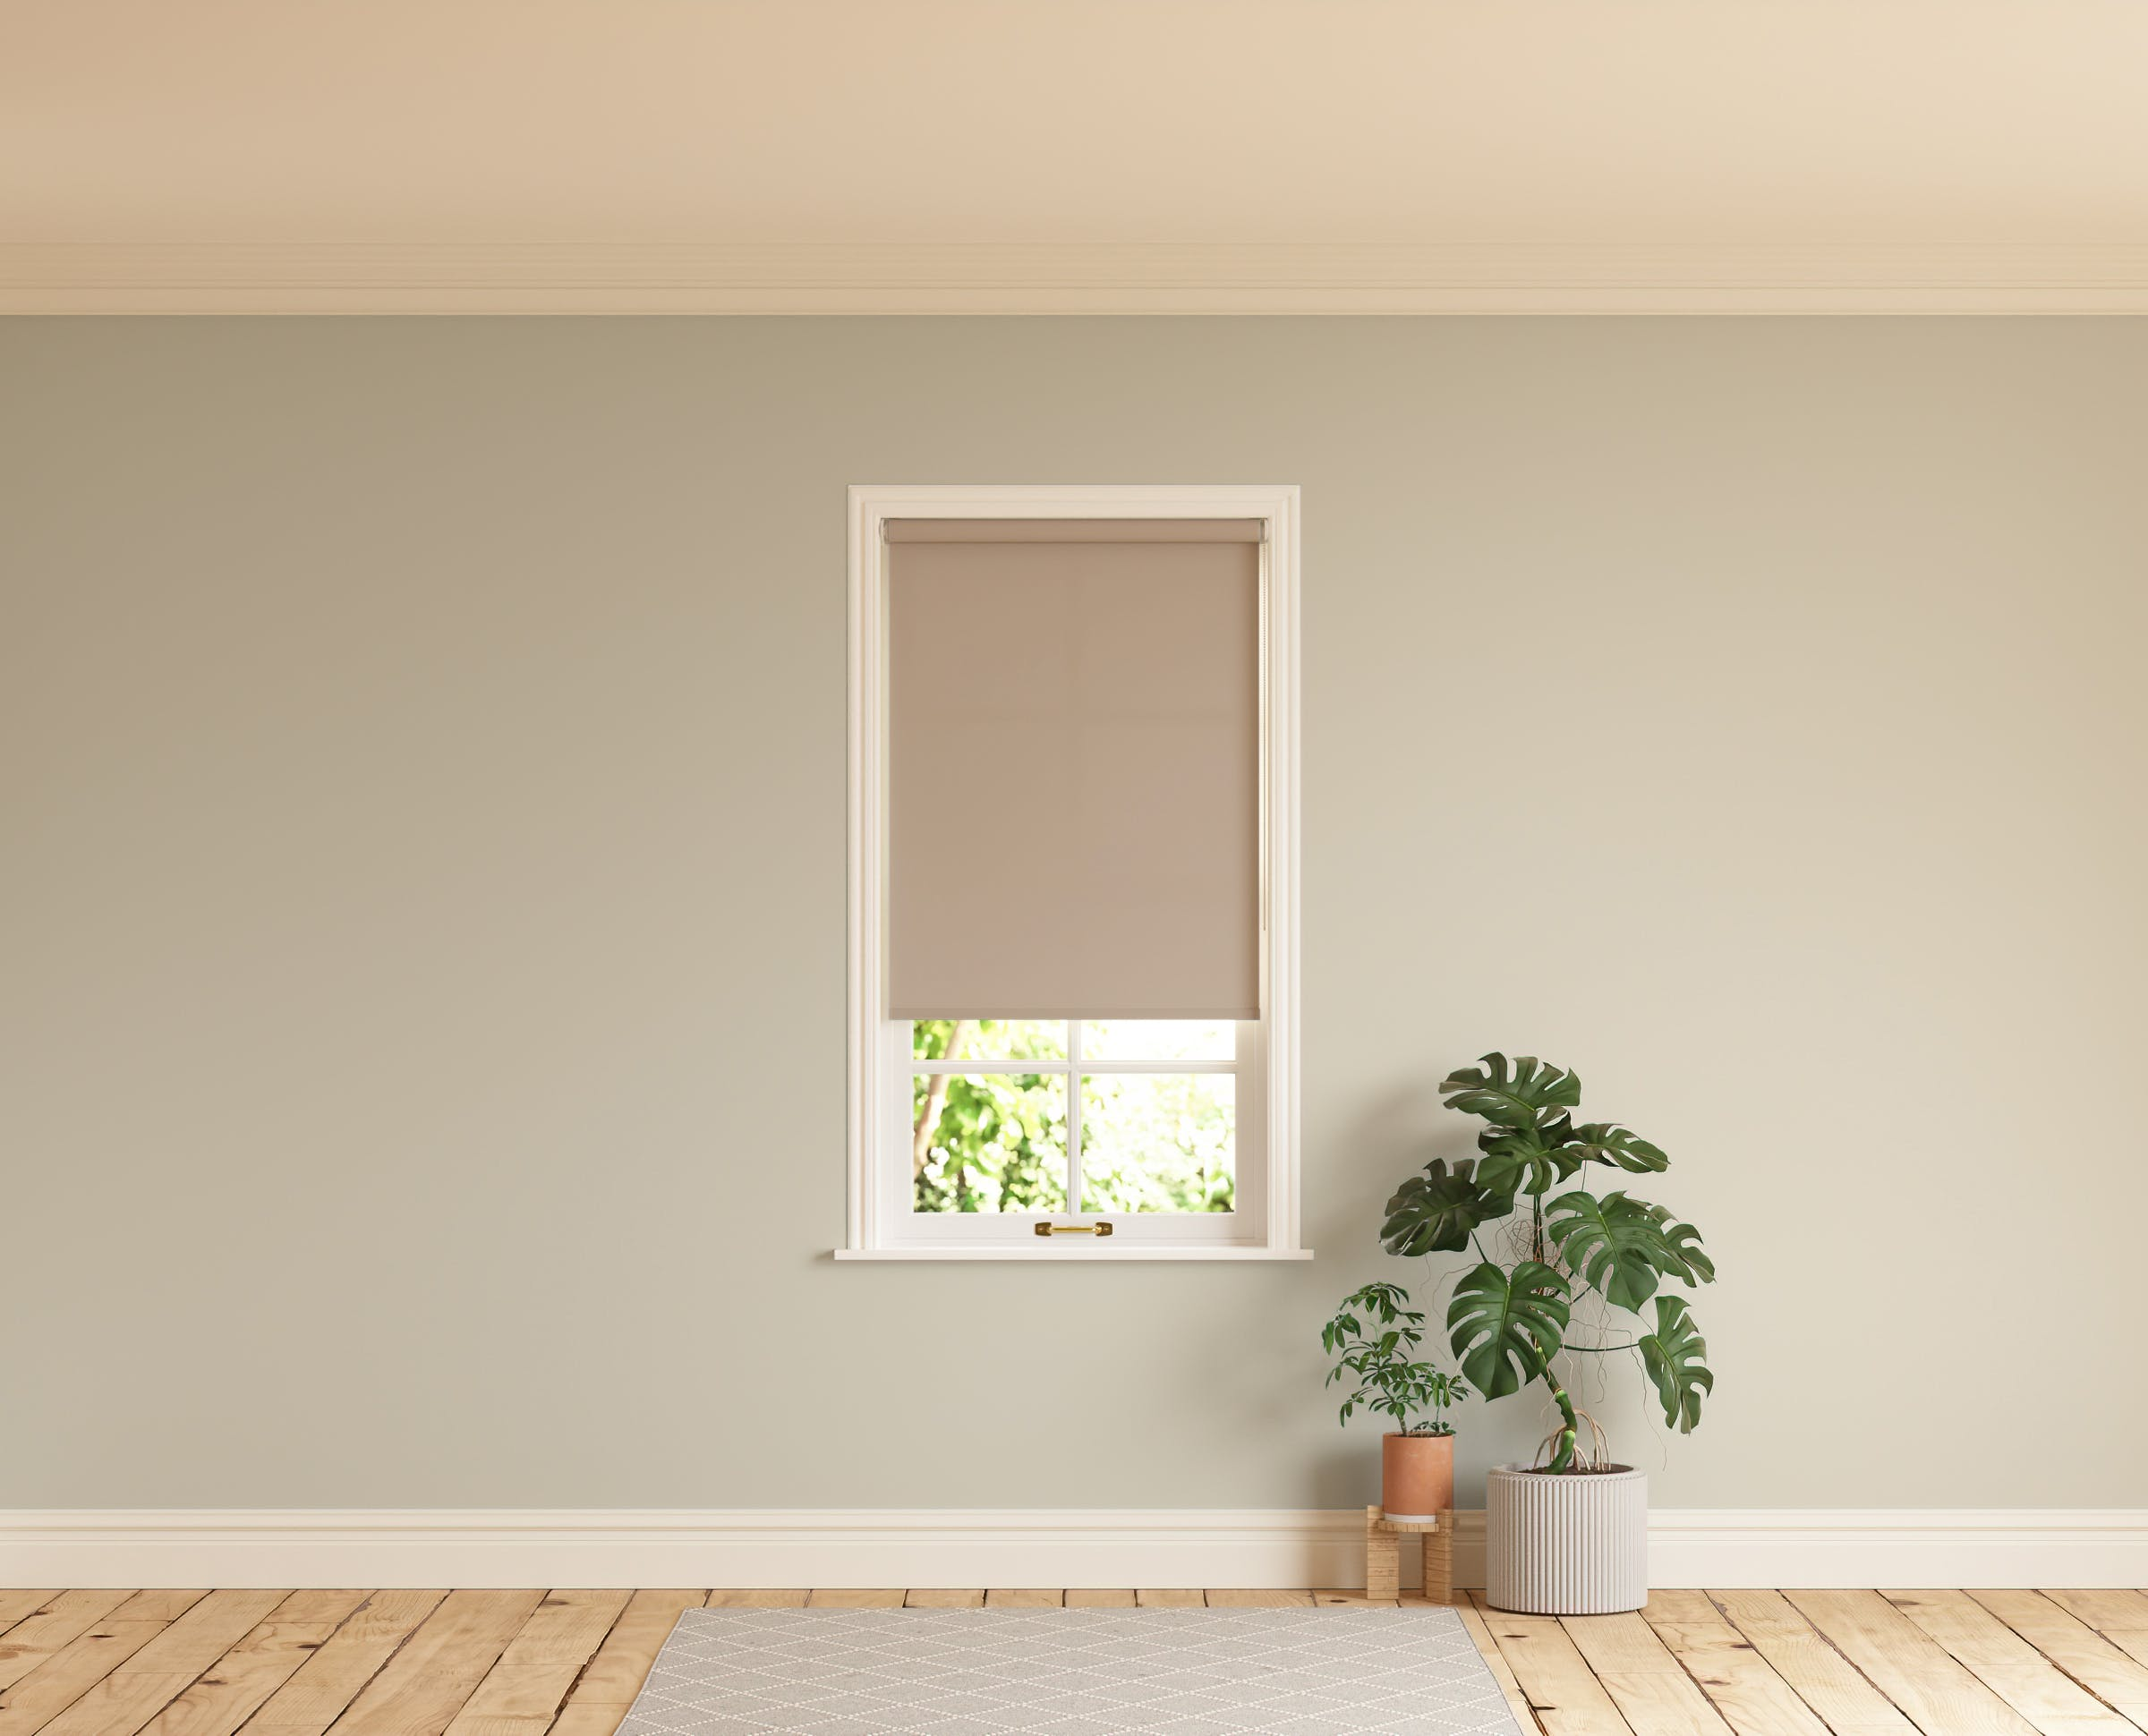 Room with walls painted in Lick Greige 01 and Beige 02 roller blinds